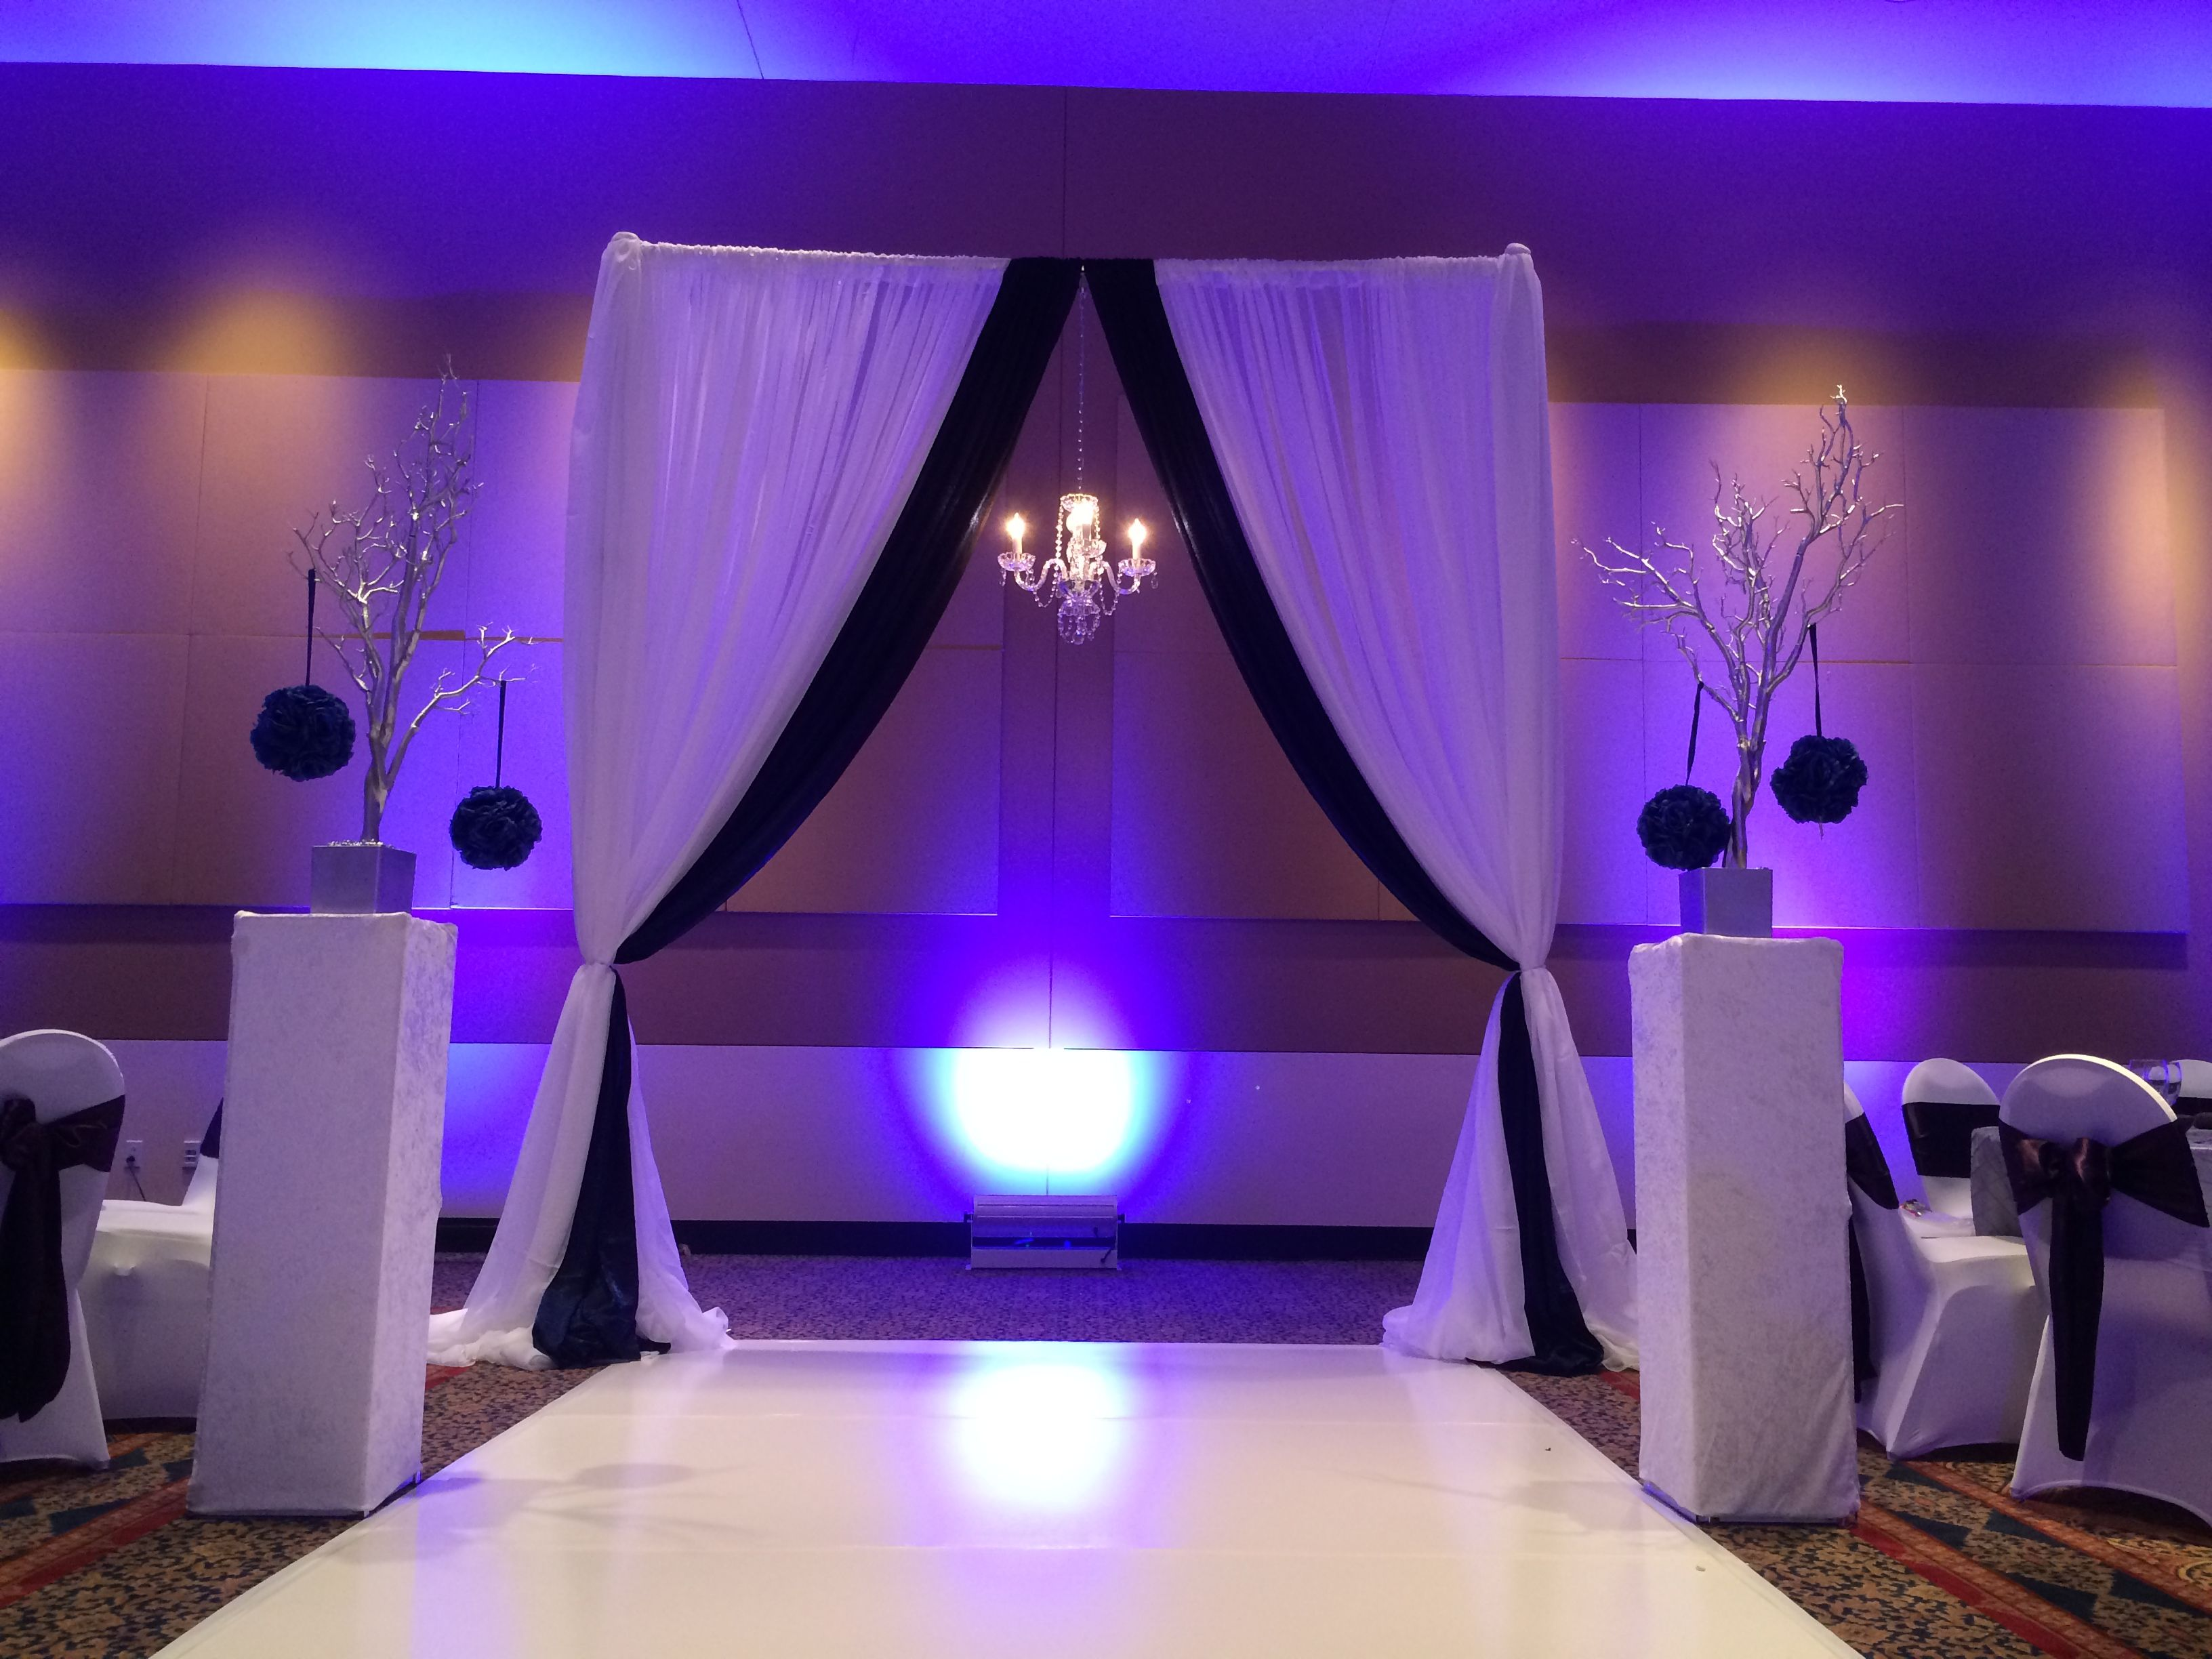 reception for hang events pleated also plus pinch skirt or well sewing receptions ceiling as co draping with tulum tulip kit how drapes to draped grommets wedding smsender